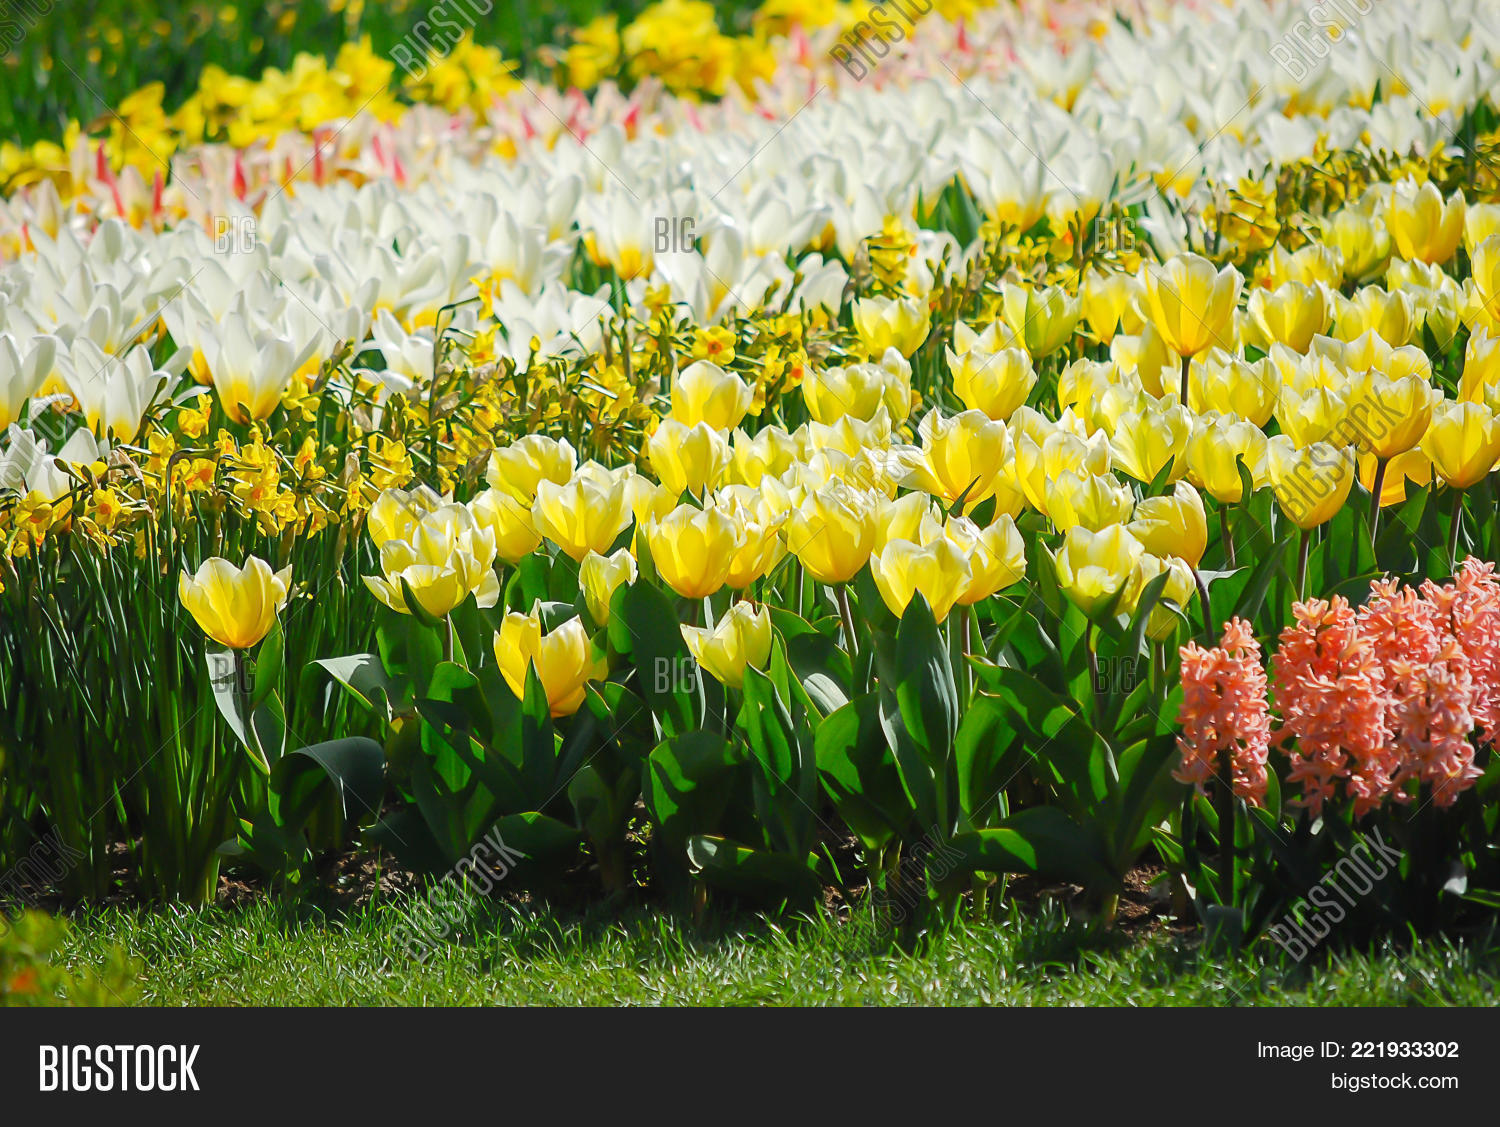 Flowers mix type image photo free trial bigstock flowers mix type of tulips in garden nature in spring season tulips in creamy mightylinksfo